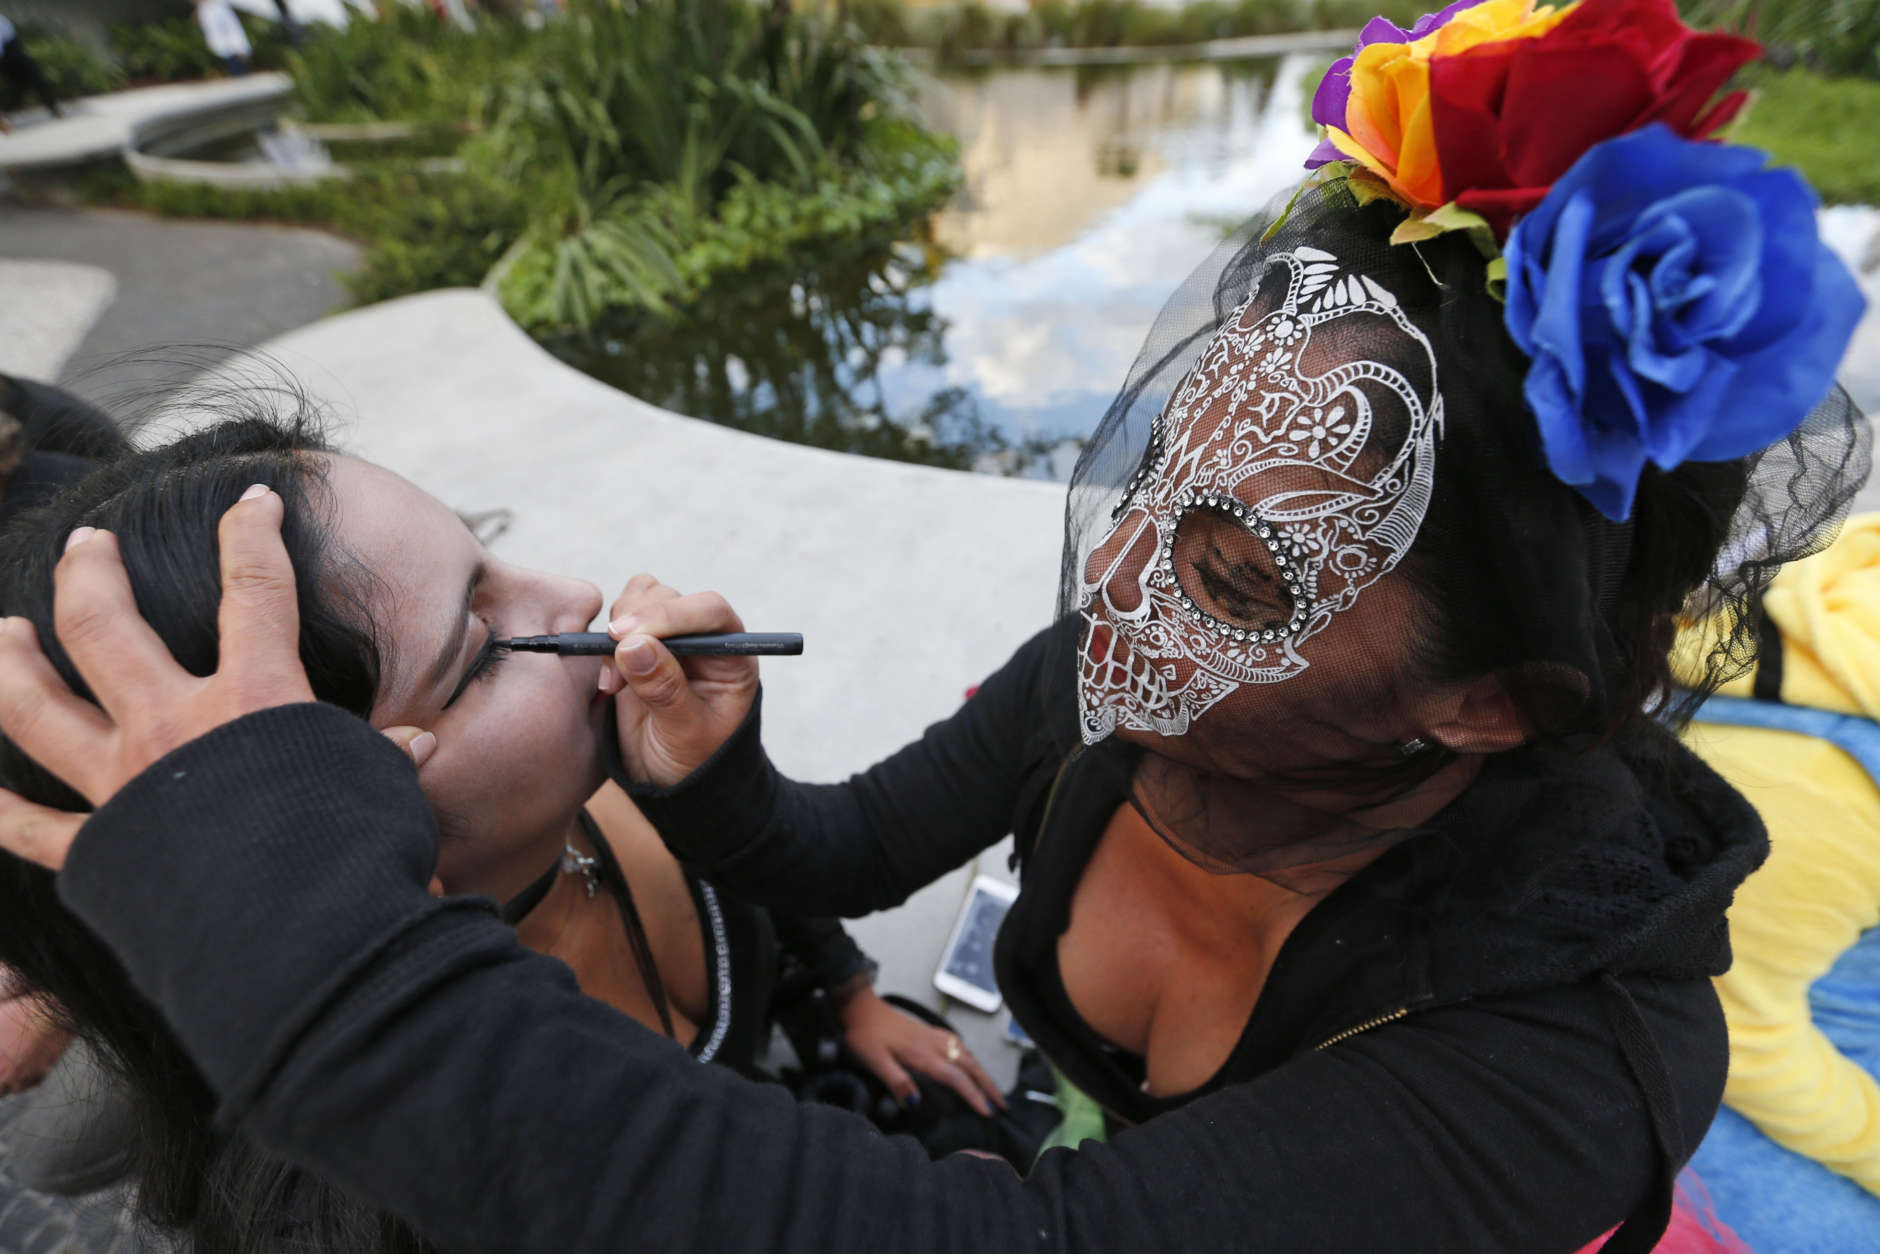 Cristina Ramirez, right, helps Alcira Tabon paint her face as they prepare to stroll along the Lincoln Road pedestrian mall for Halloween, Tuesday, Oct. 31, 2017, in the South Beach neighborhood of Miami Beach, Fla. (AP Photo/Wilfredo Lee)